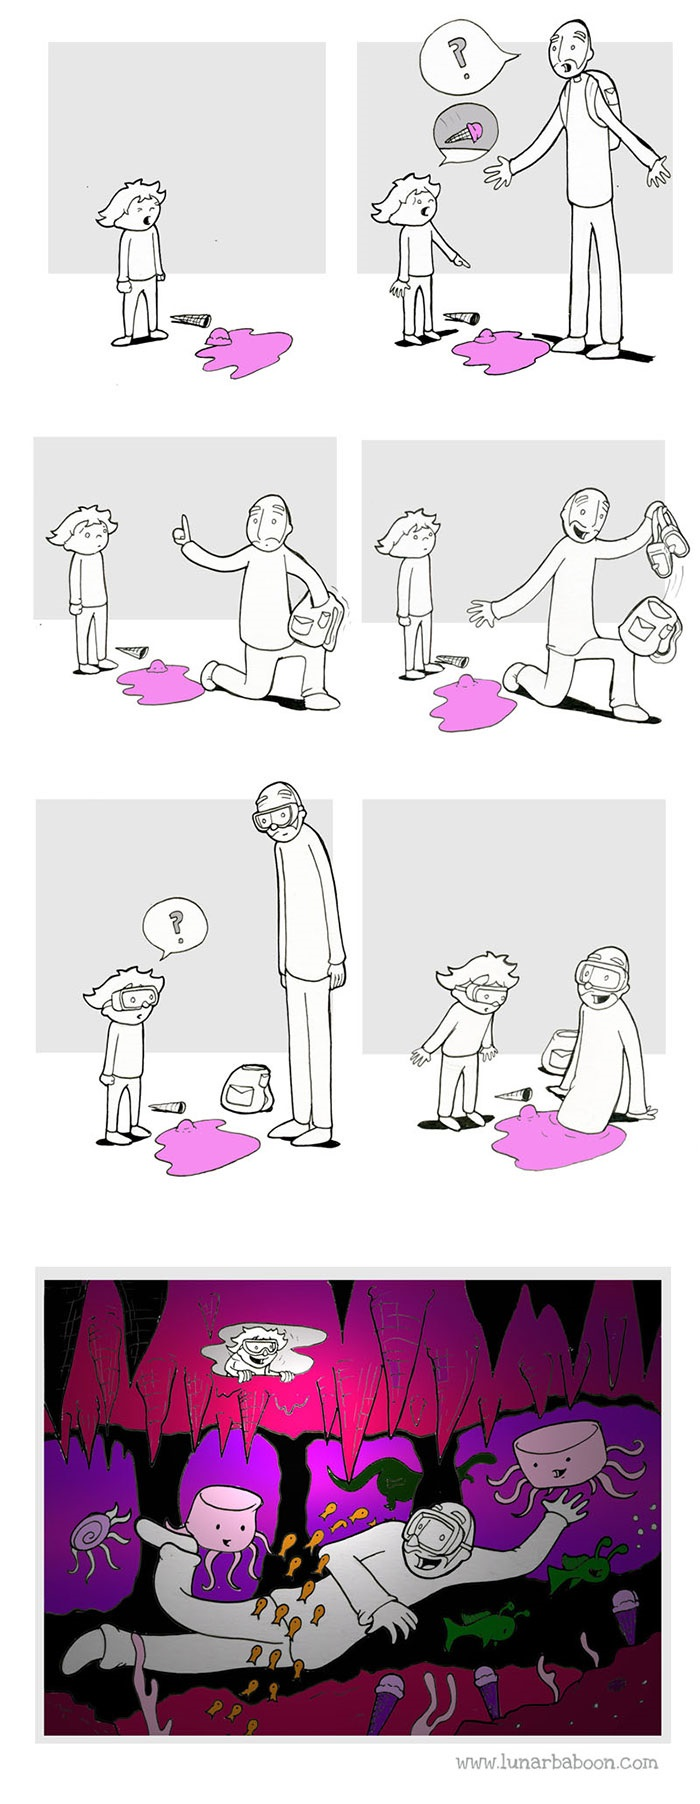 lunarbaboon-15